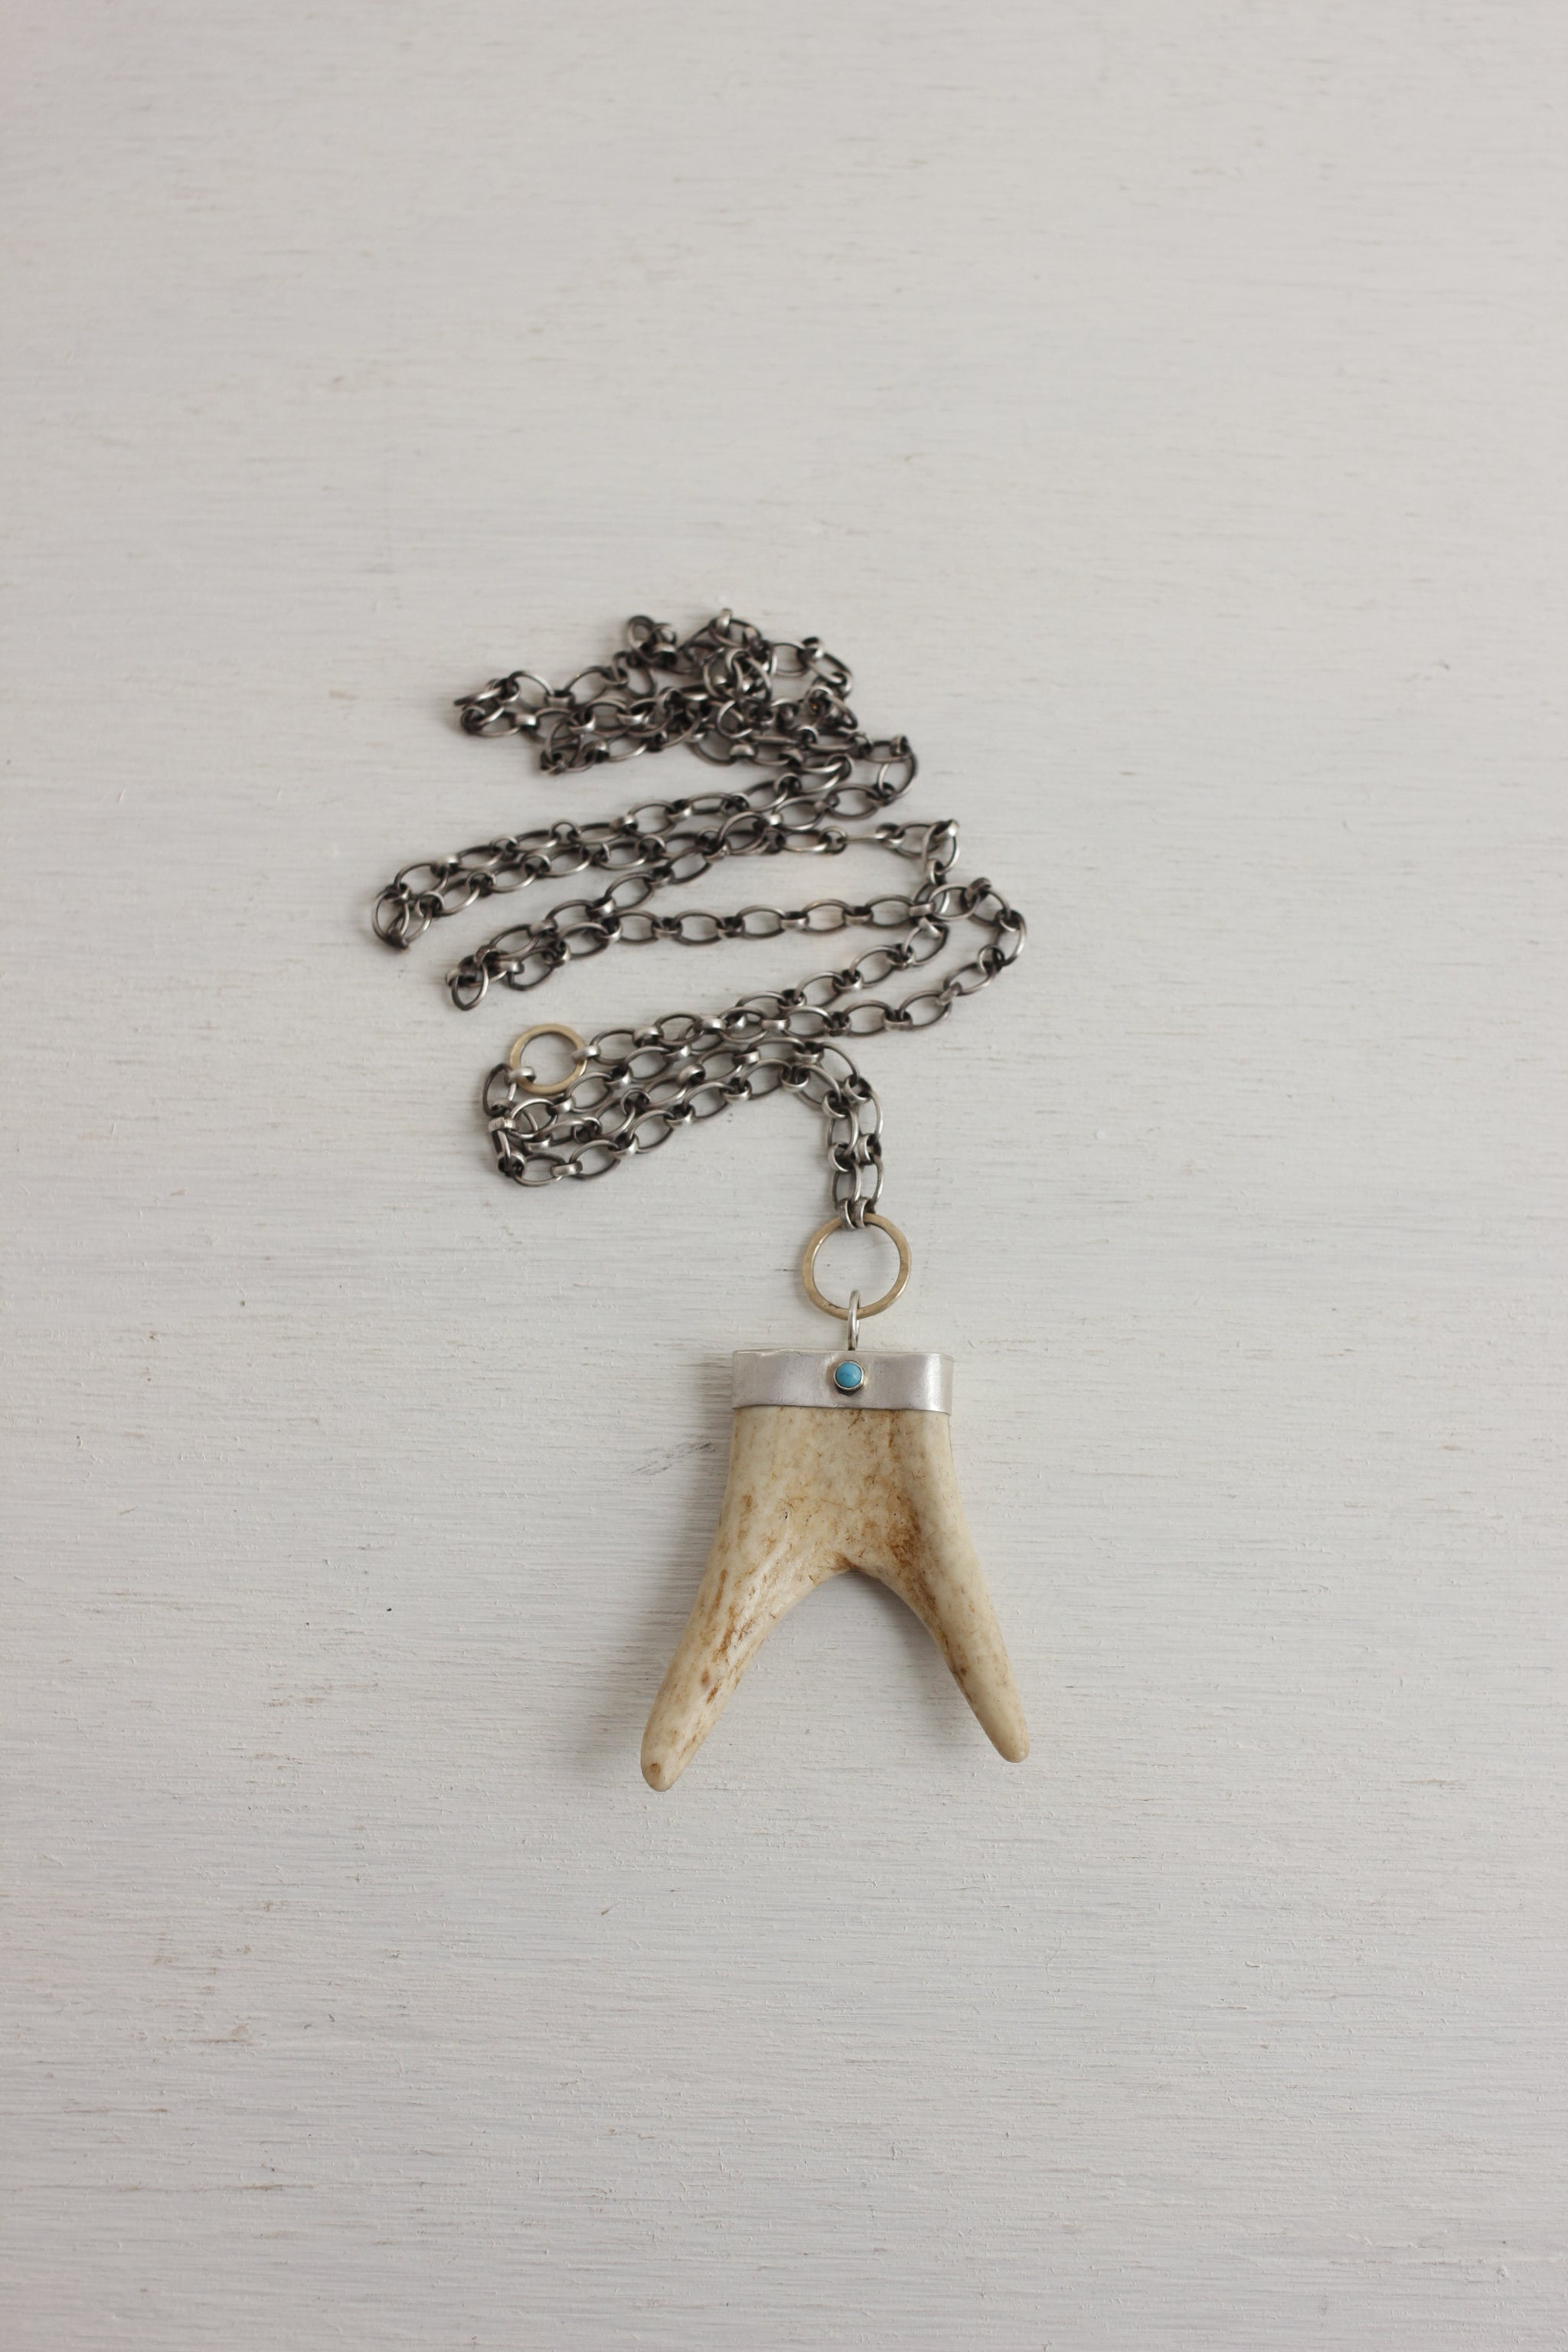 CLP antler tip necklace on chain